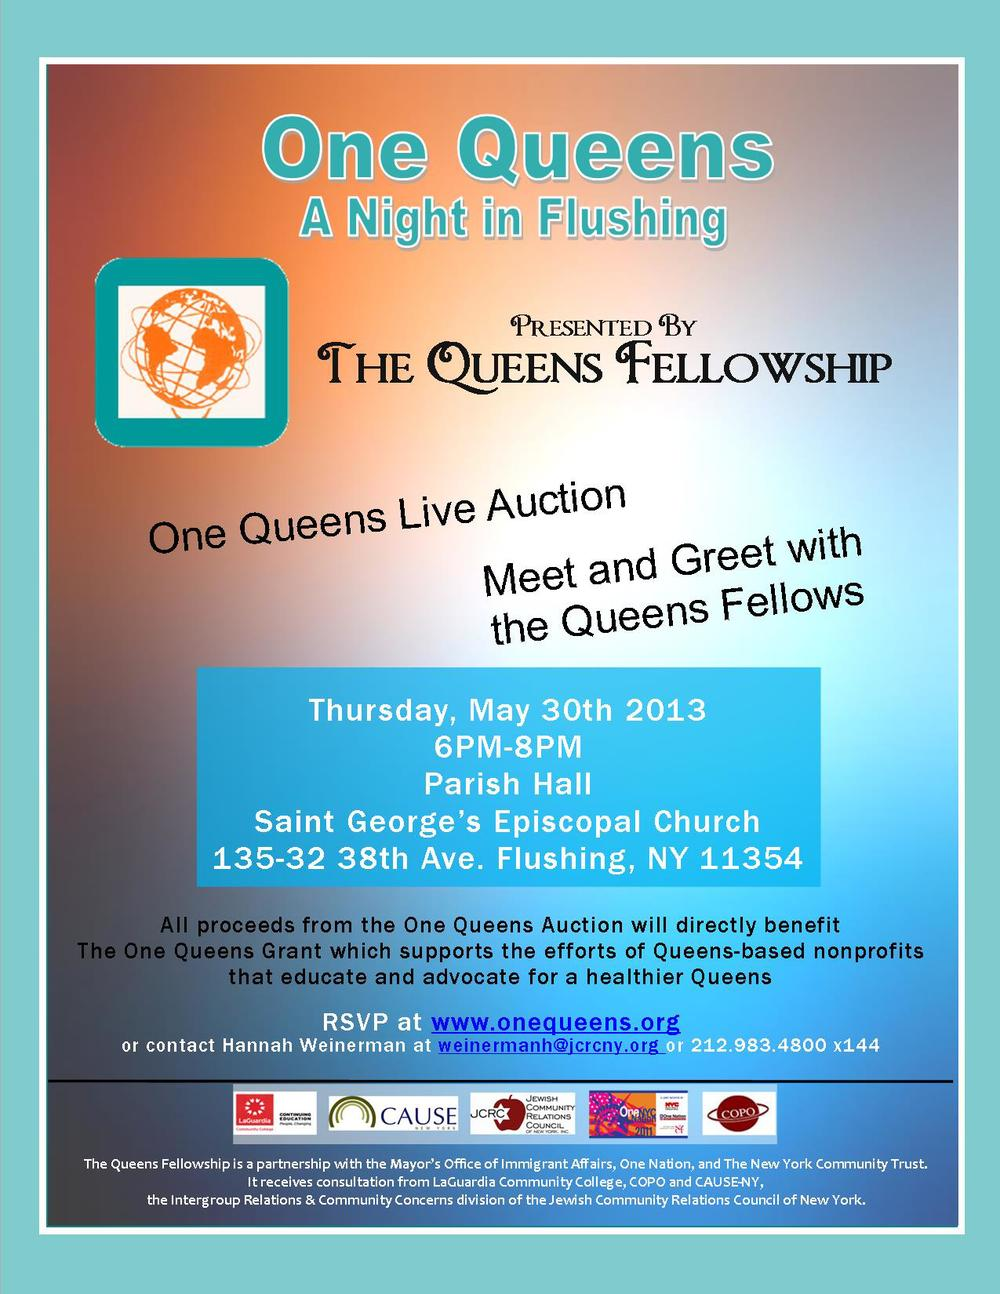 One Queens Friendraiser: A Night in Flushing event highlighted both the Fellowship and the One Queens Auction. The event took place at the historic Saint George's Episcopal Church in downtown Flushing and raised over $800 through donations and items sold at the One Queens Auction.